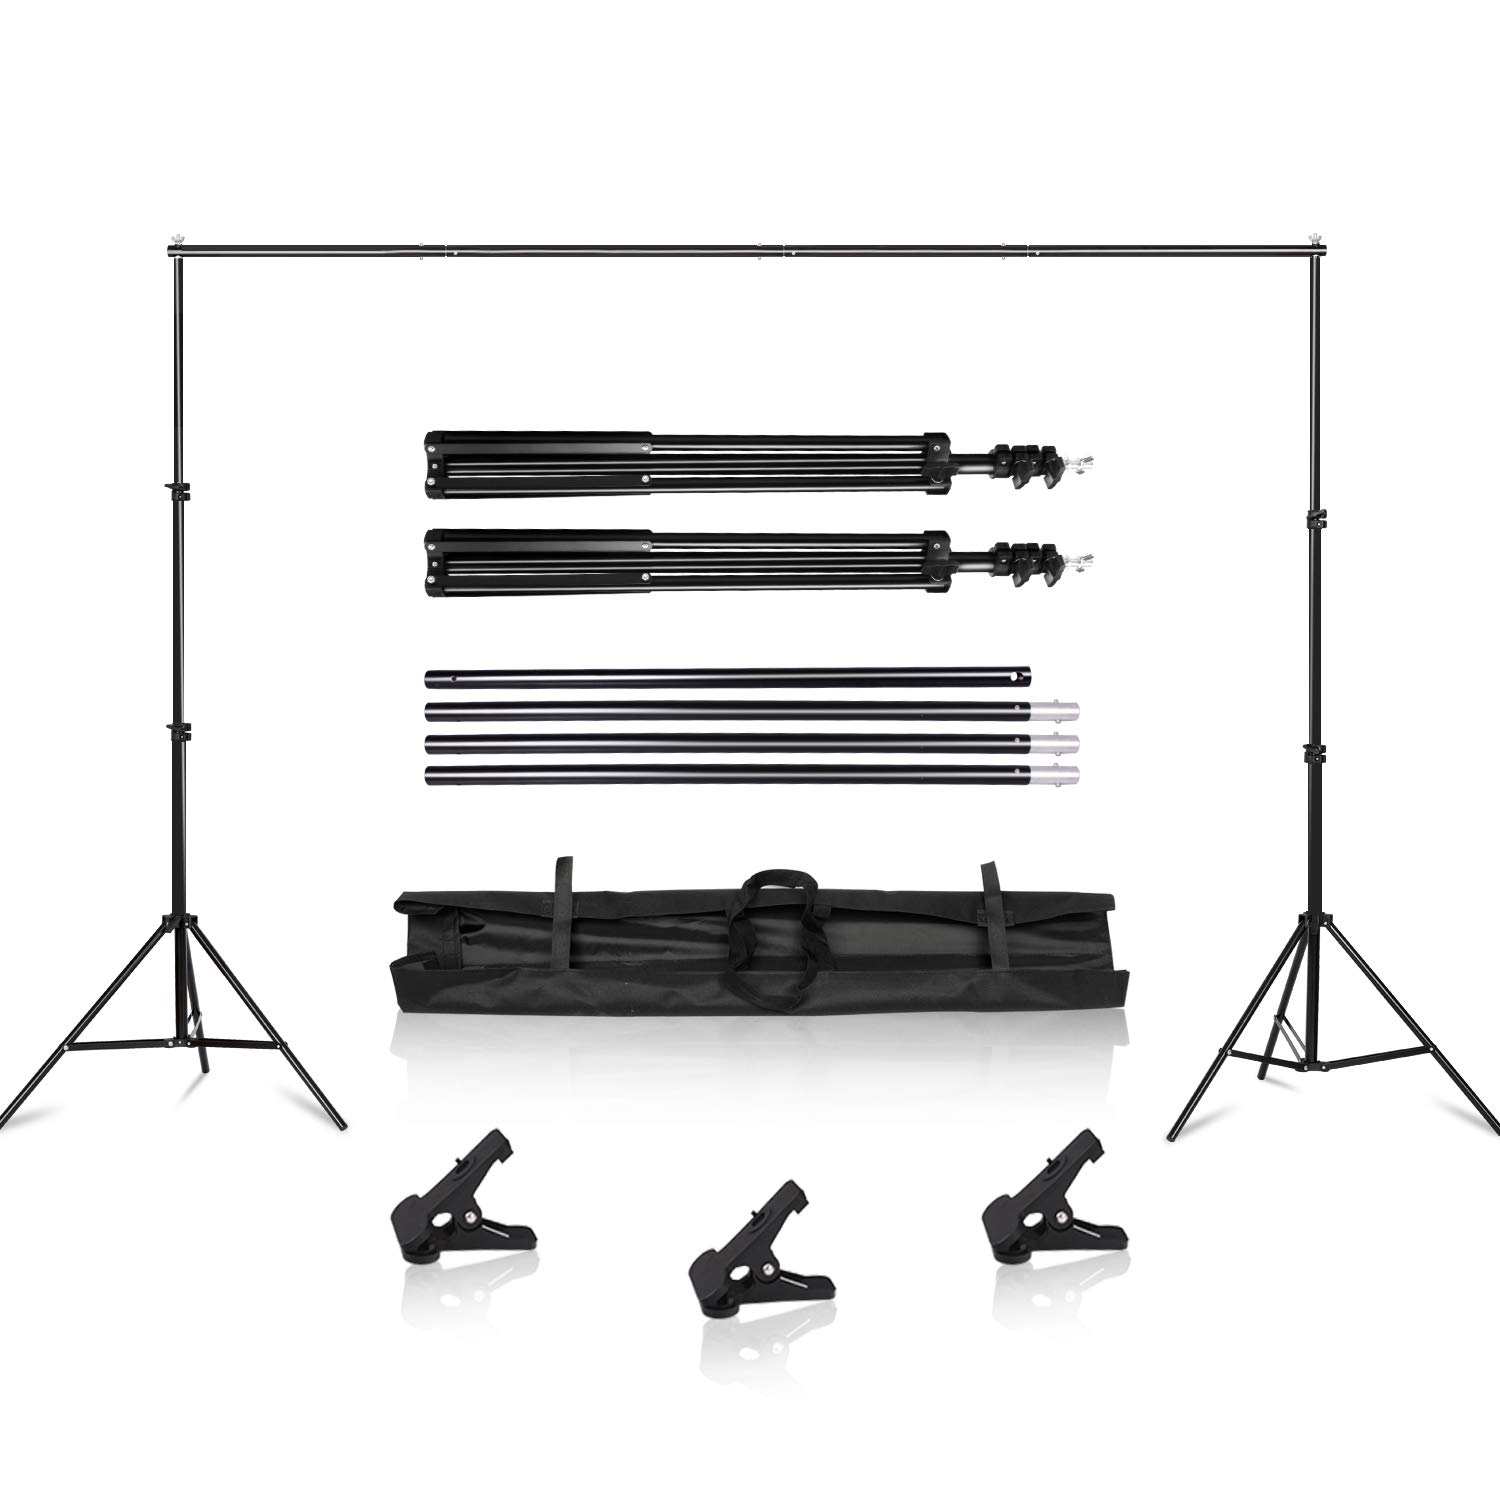 SH Background Stand, 6.5 x 10FT Heavy Duty Background Stand, 2x3M Backdrop Support System Kit with Carry Bag for Photography Photo Video Studio,Photography Studio by SH